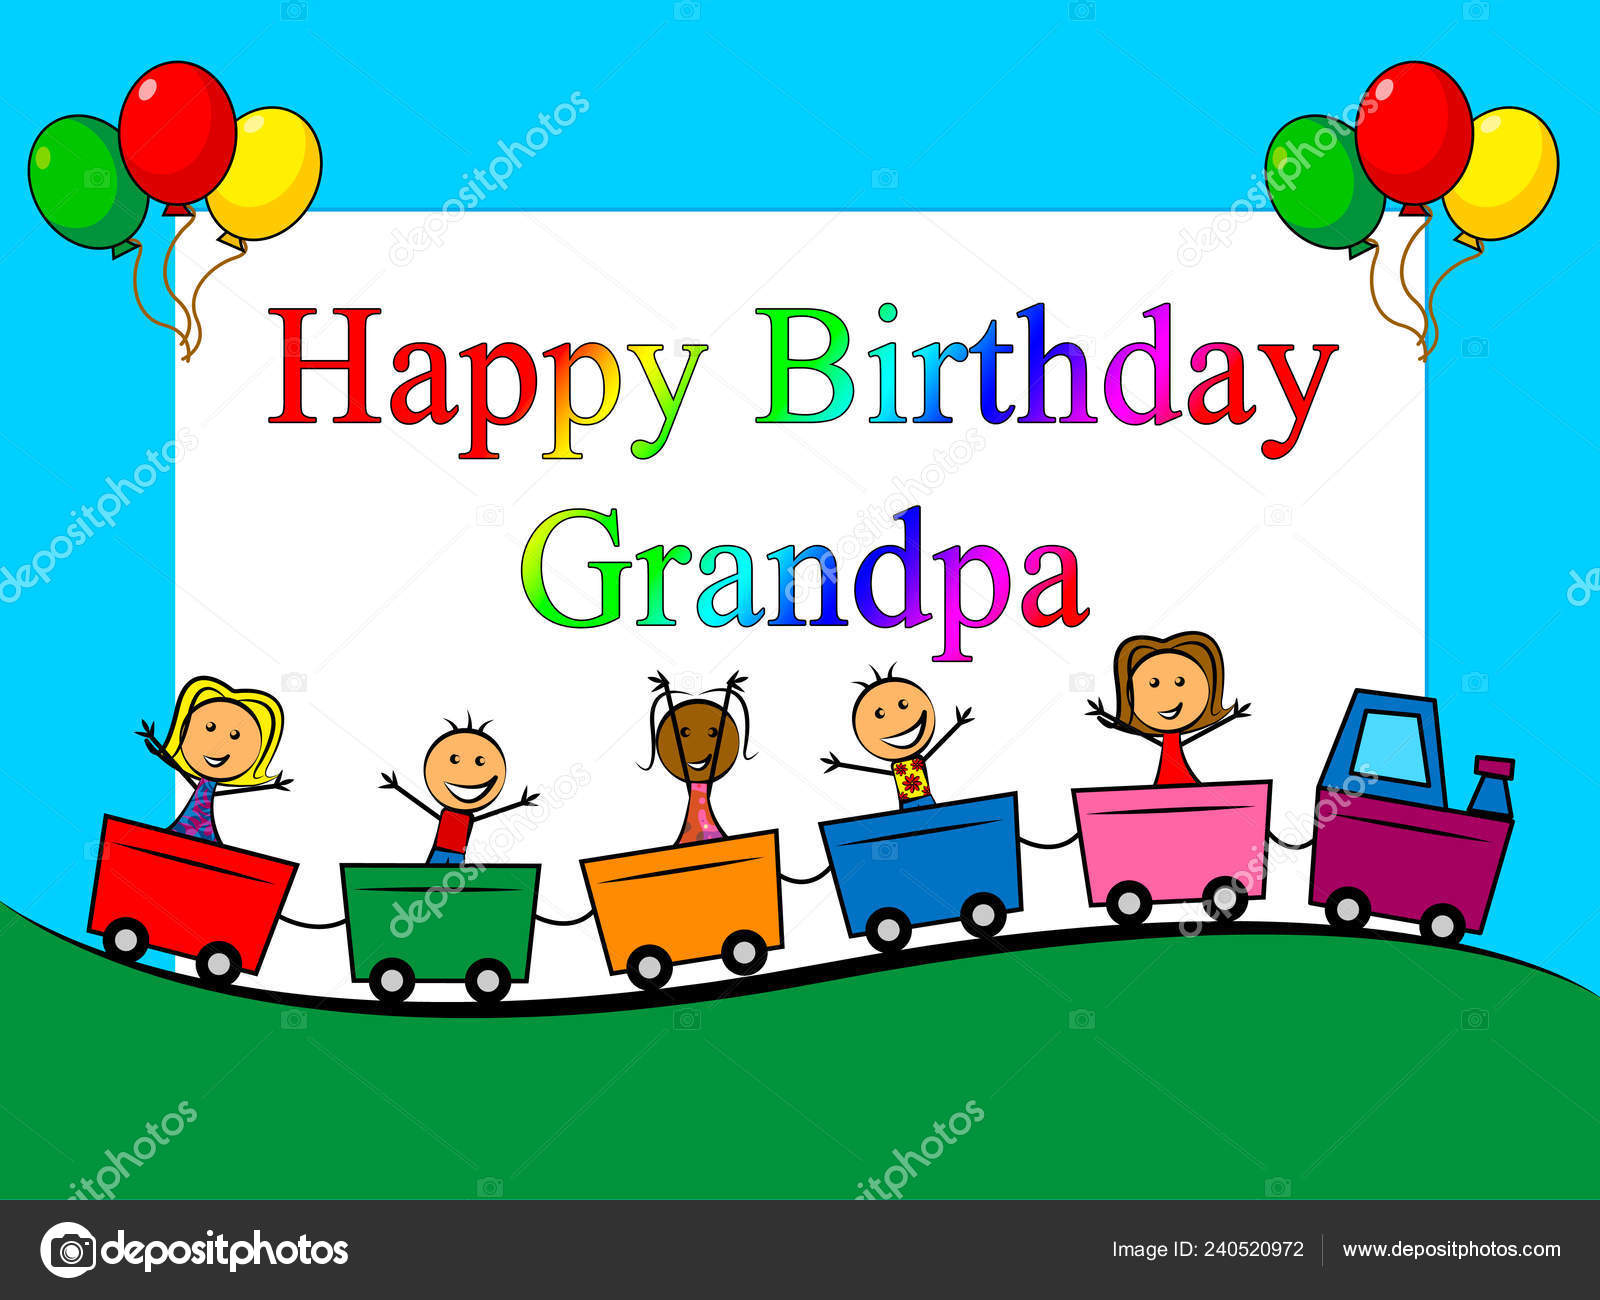 Happy Birthday Grandpa Card Surprise Greeting Grandad Best Wishes Grandfather Stock Photo